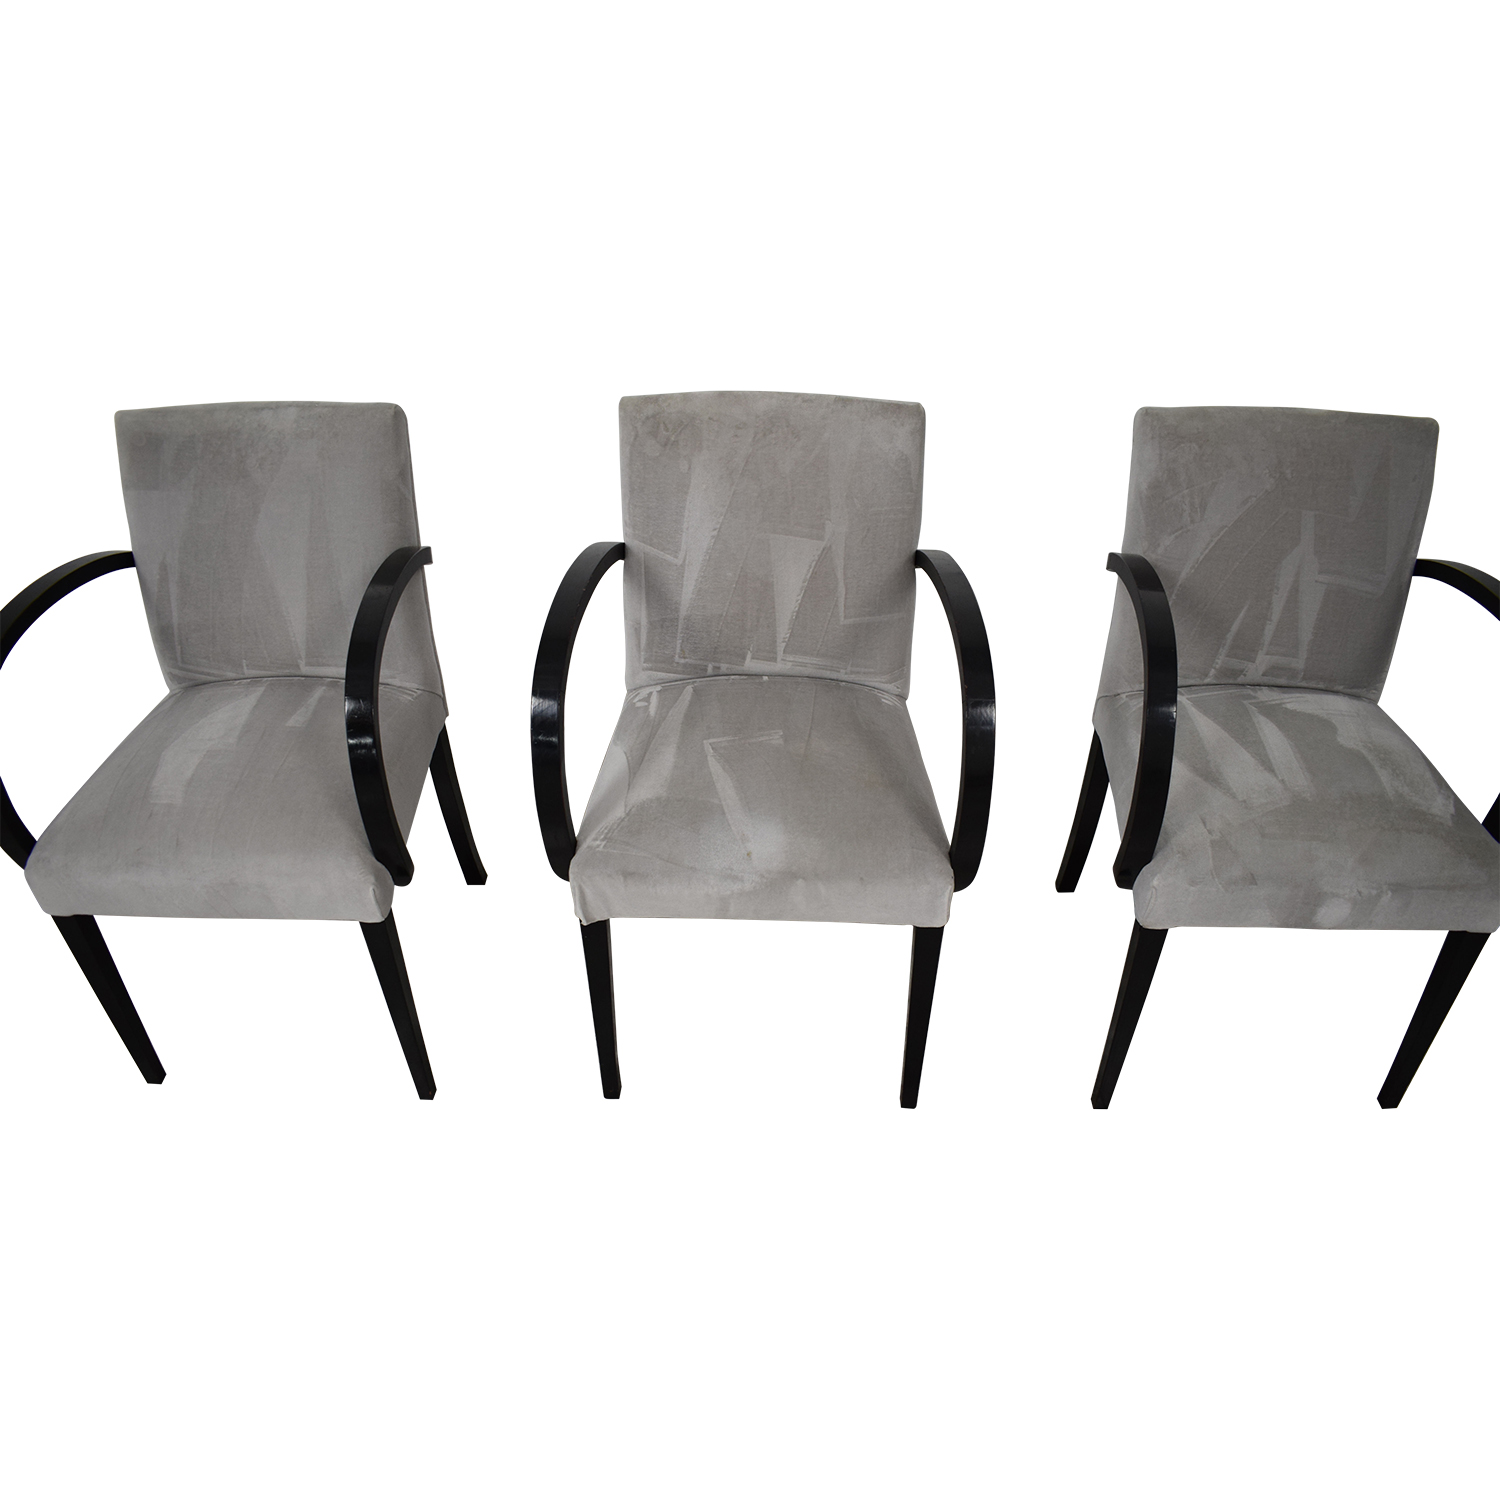 French Art Deco Chairs sale